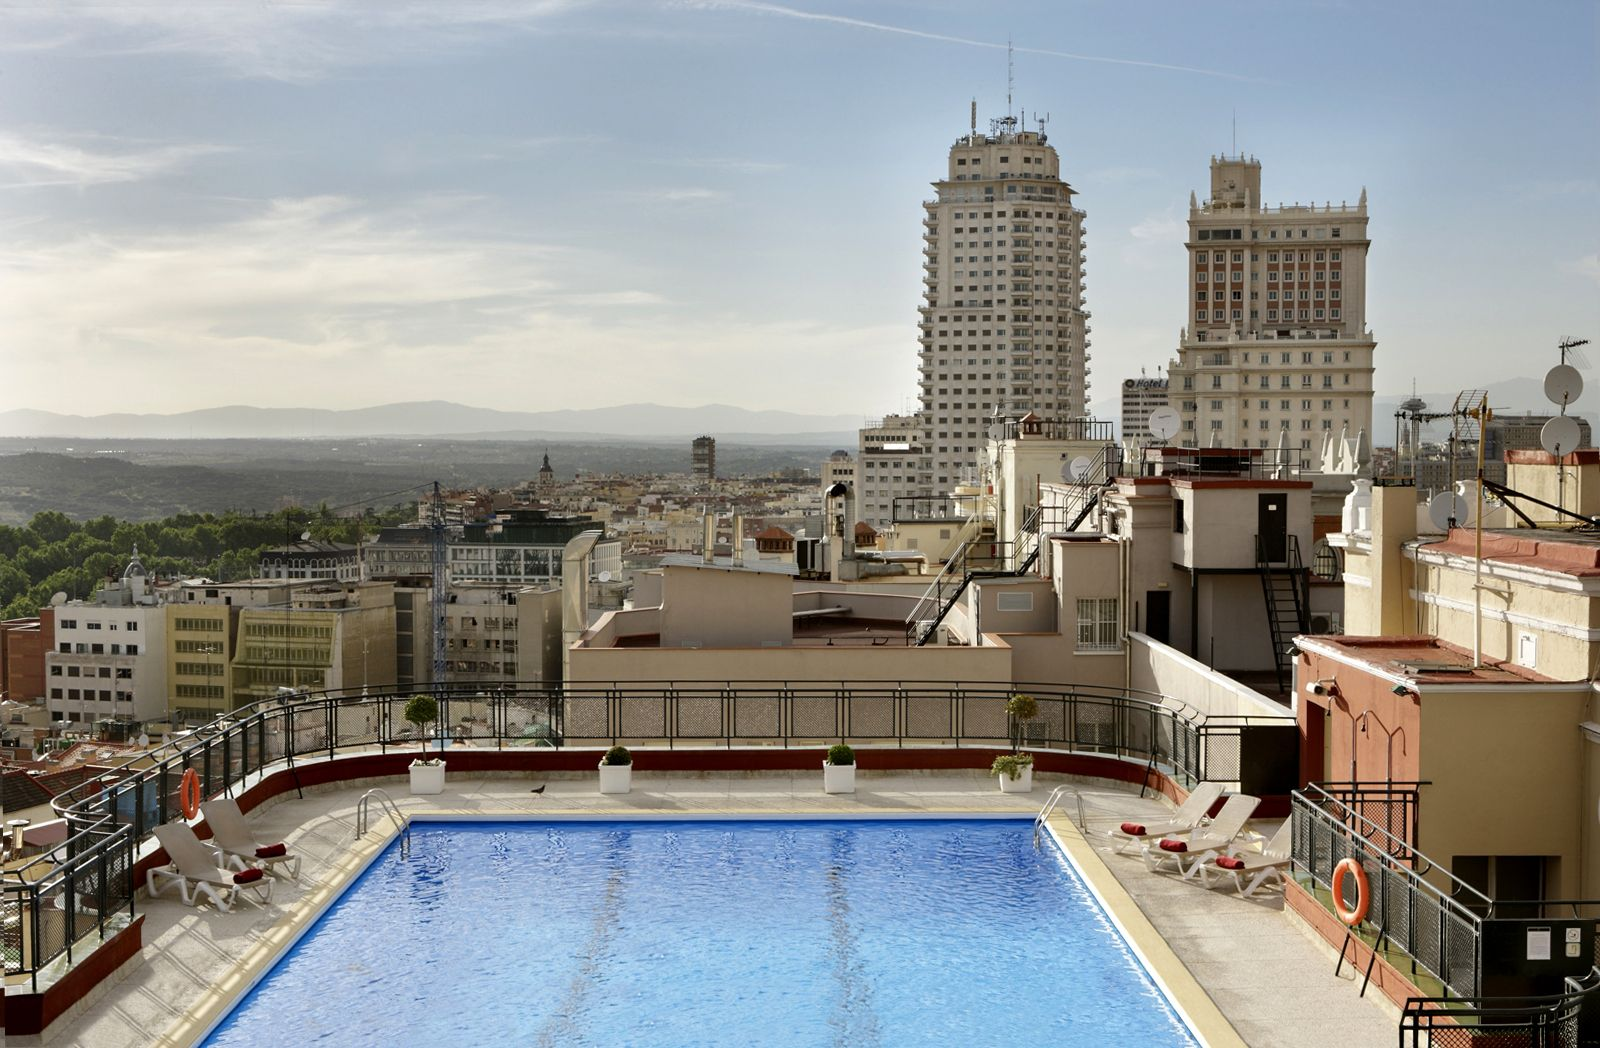 Piscina En Madrid Piscina Del Hotel Emperador De Madrid Favorite Places Spaces